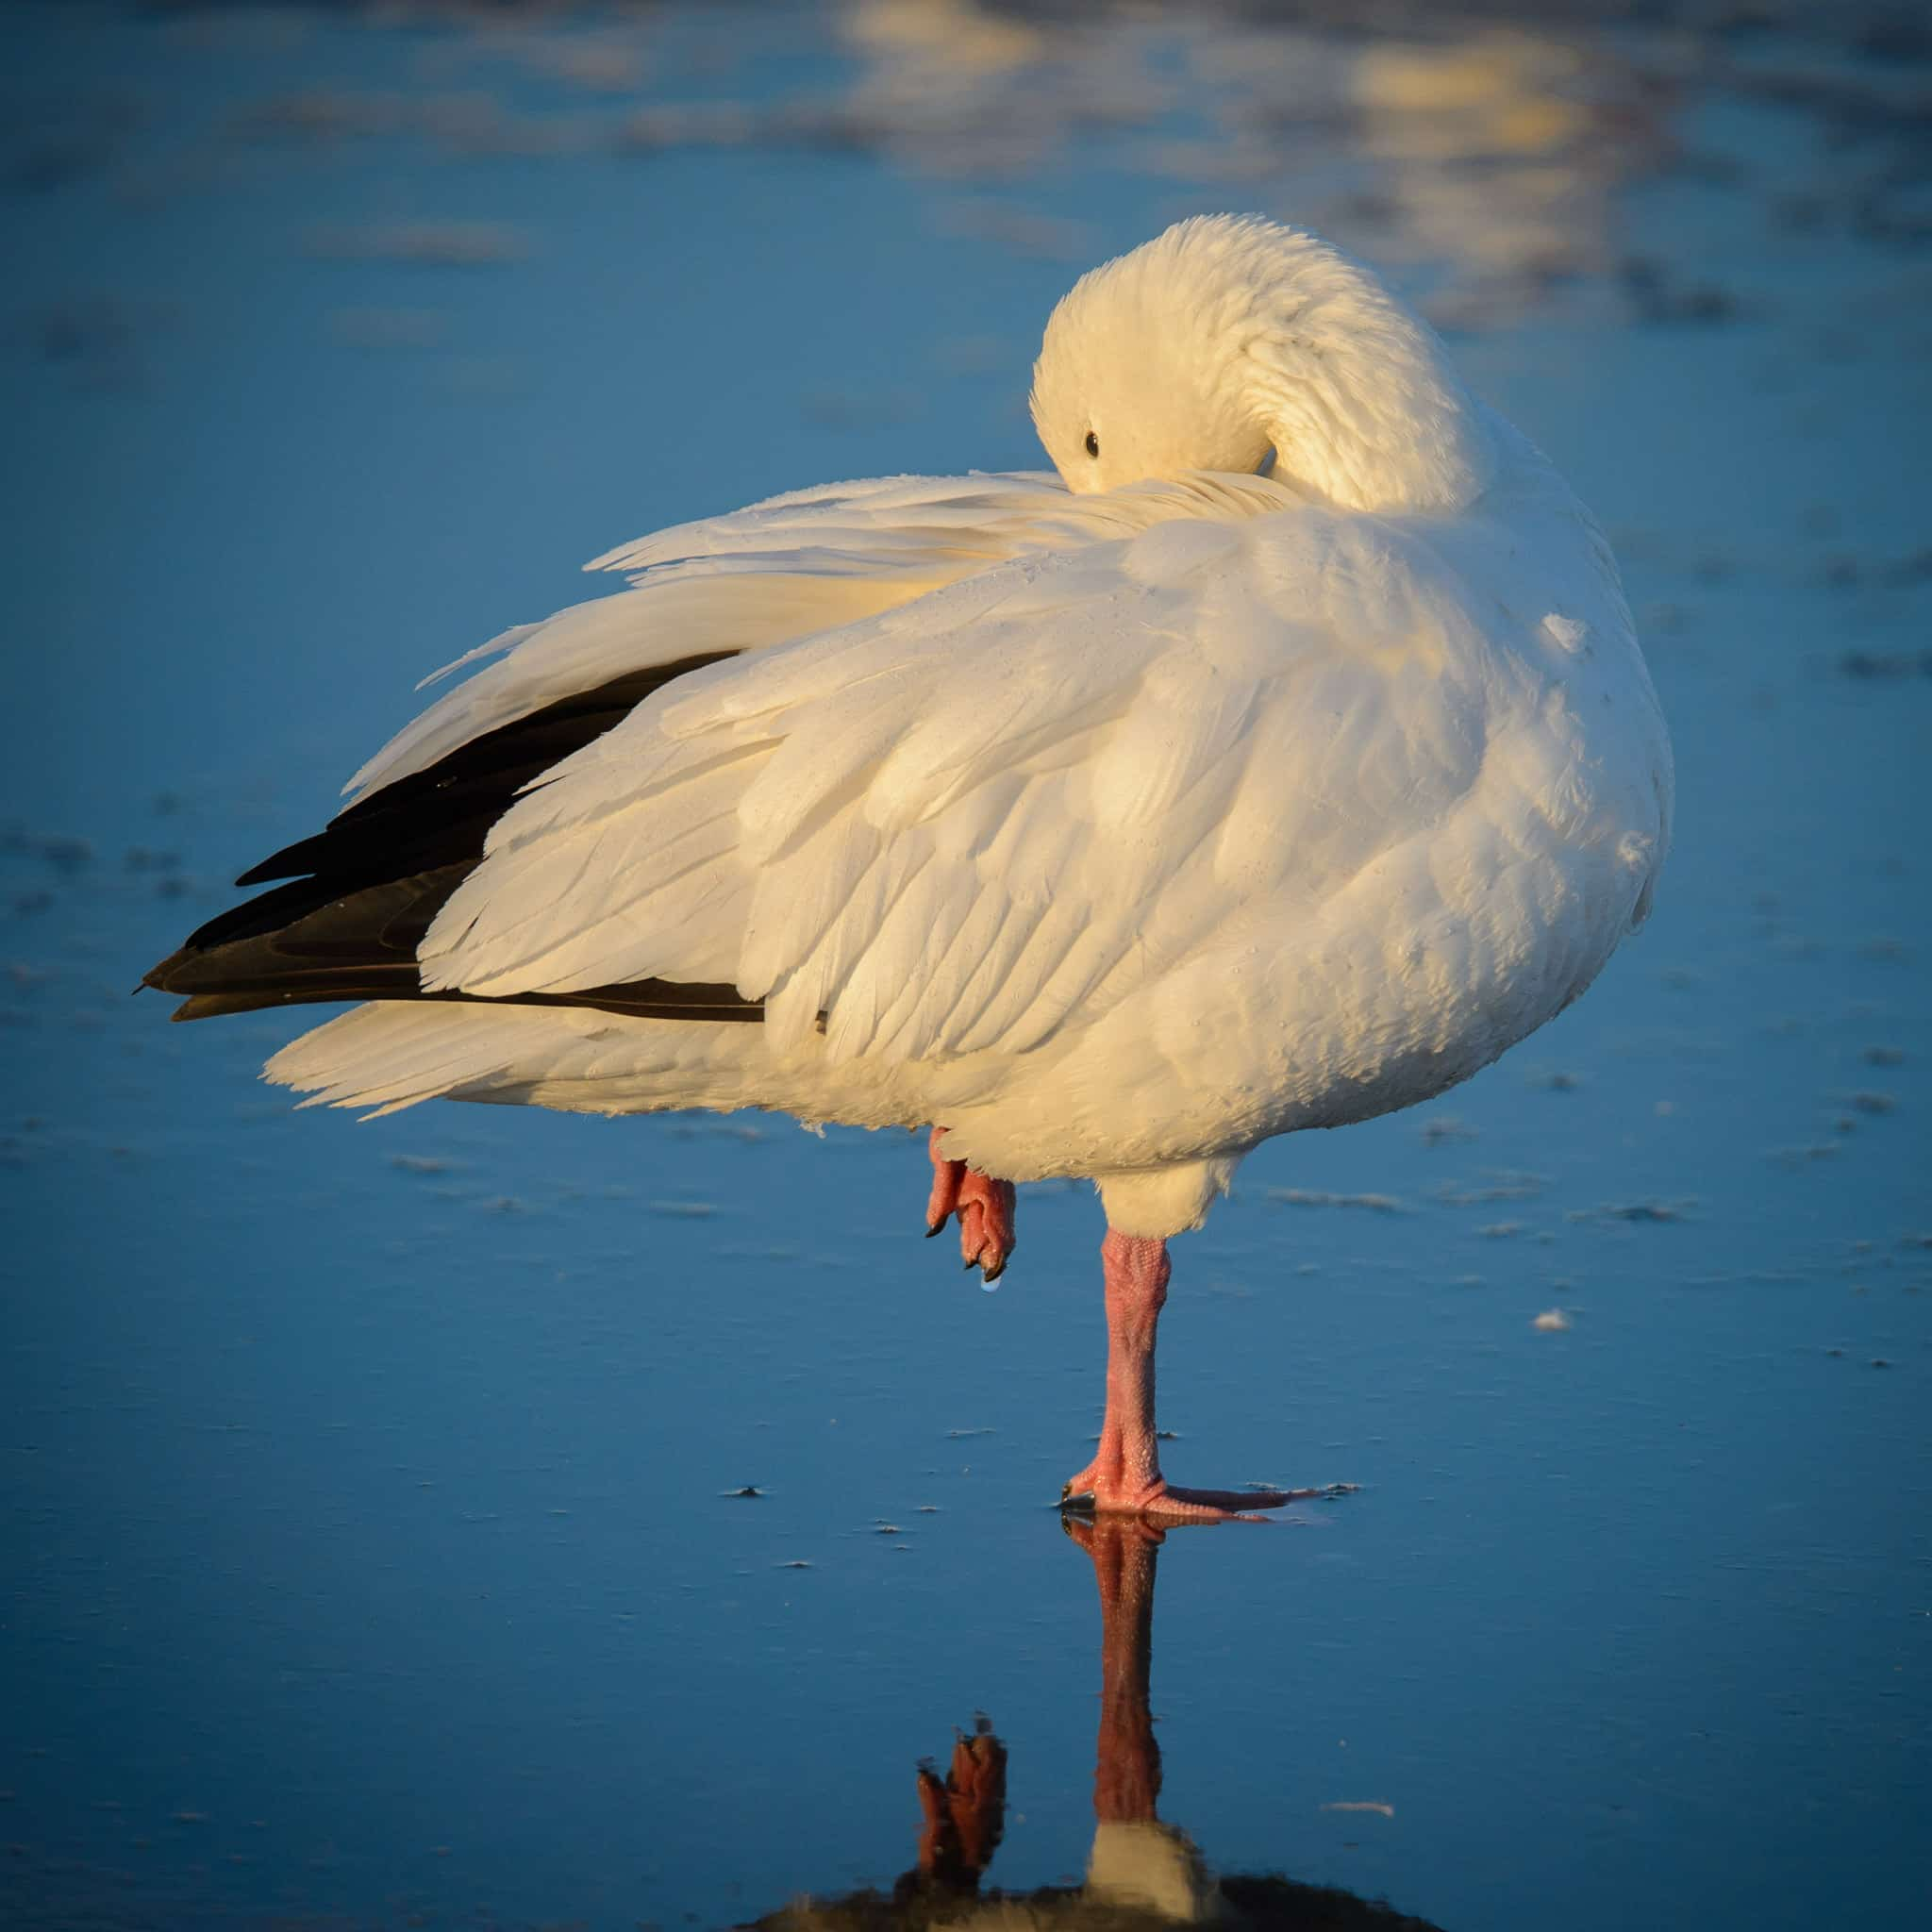 This Snow Goose was photographed on a pond in Bosque del Apache National Wildlife Refuge near Socorro, New Mexico.